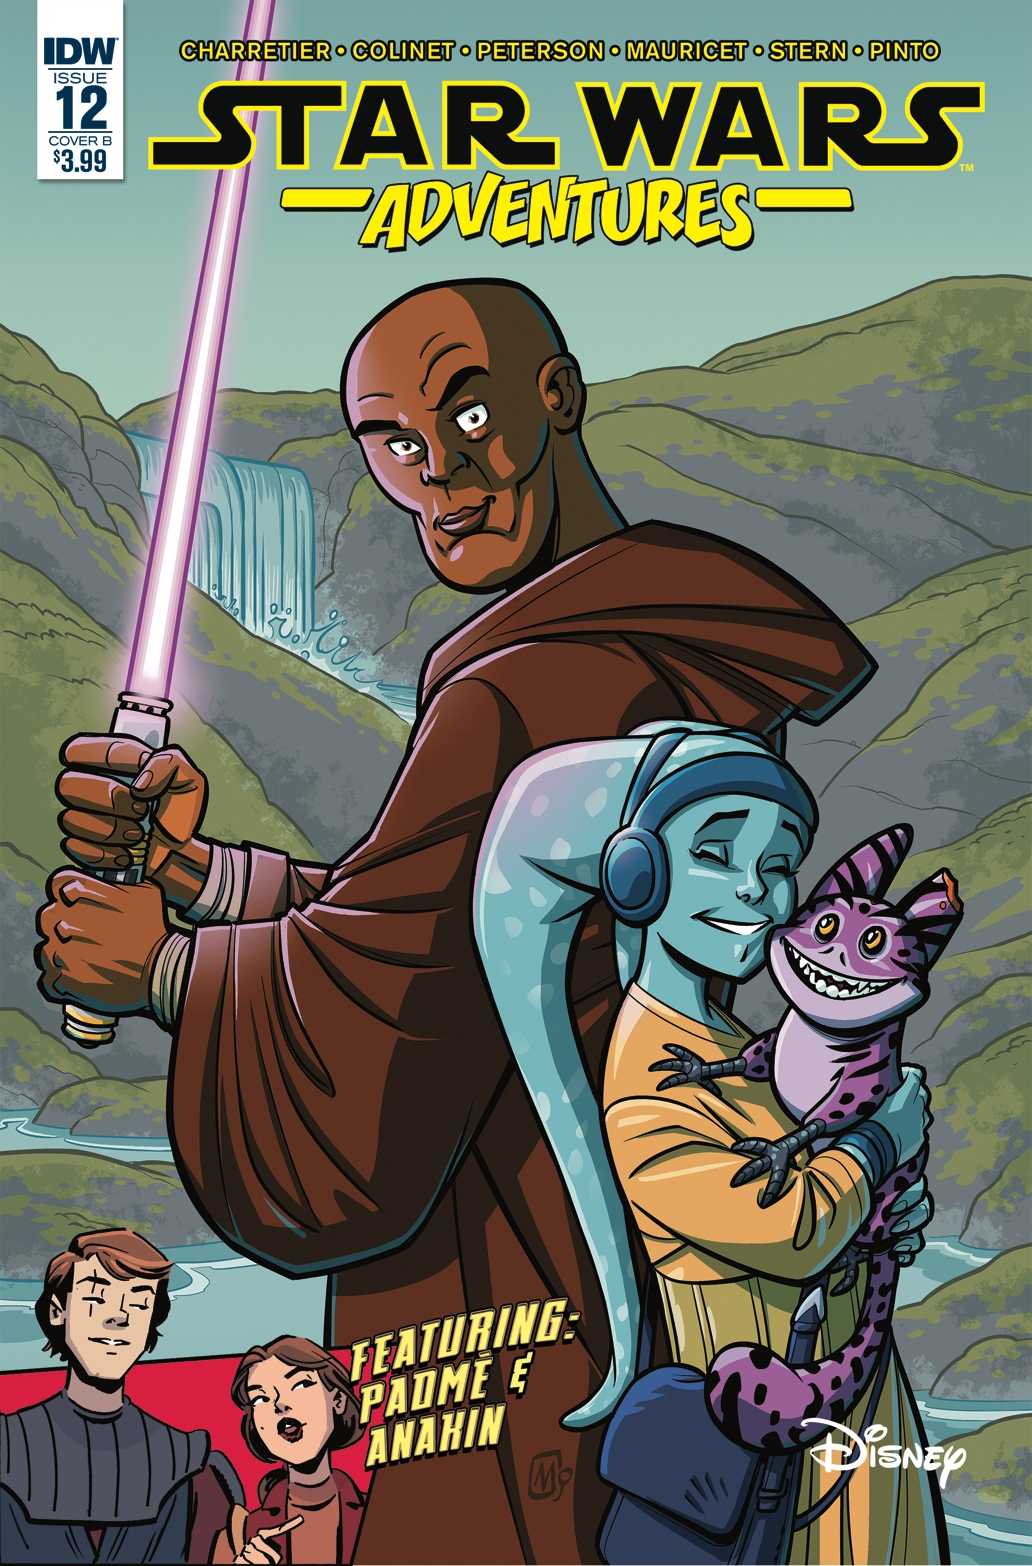 Star Wars Adventures #12 (Cover B by Alain Mauricet) (25.07.2018)